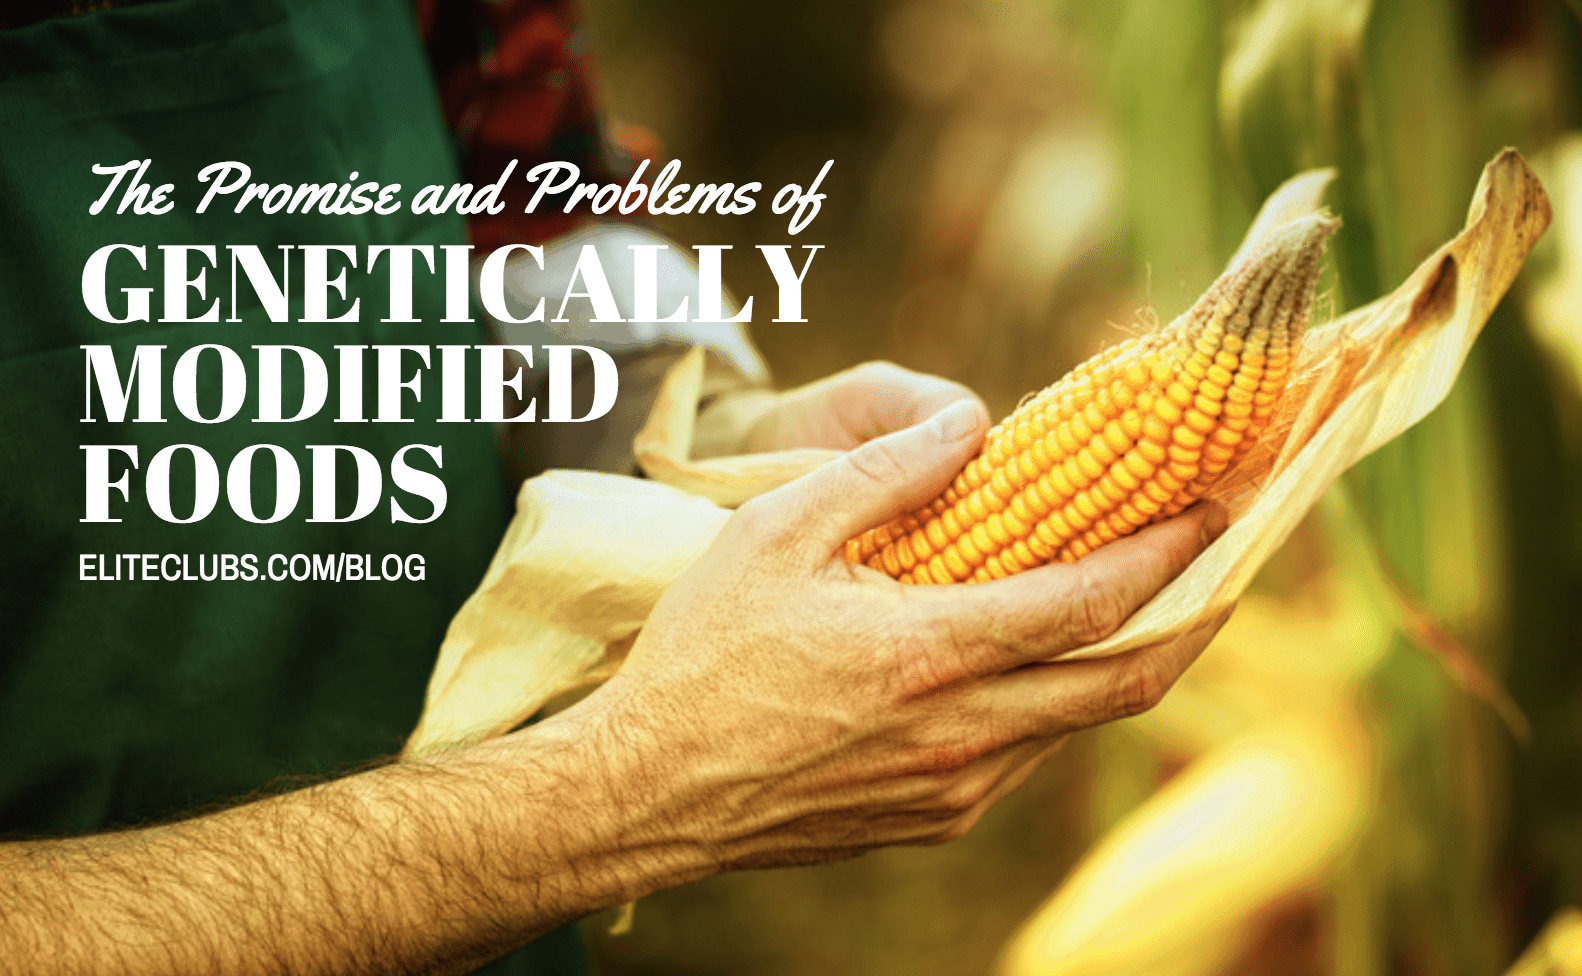 Promise and Problems of Genetically Modified Foods